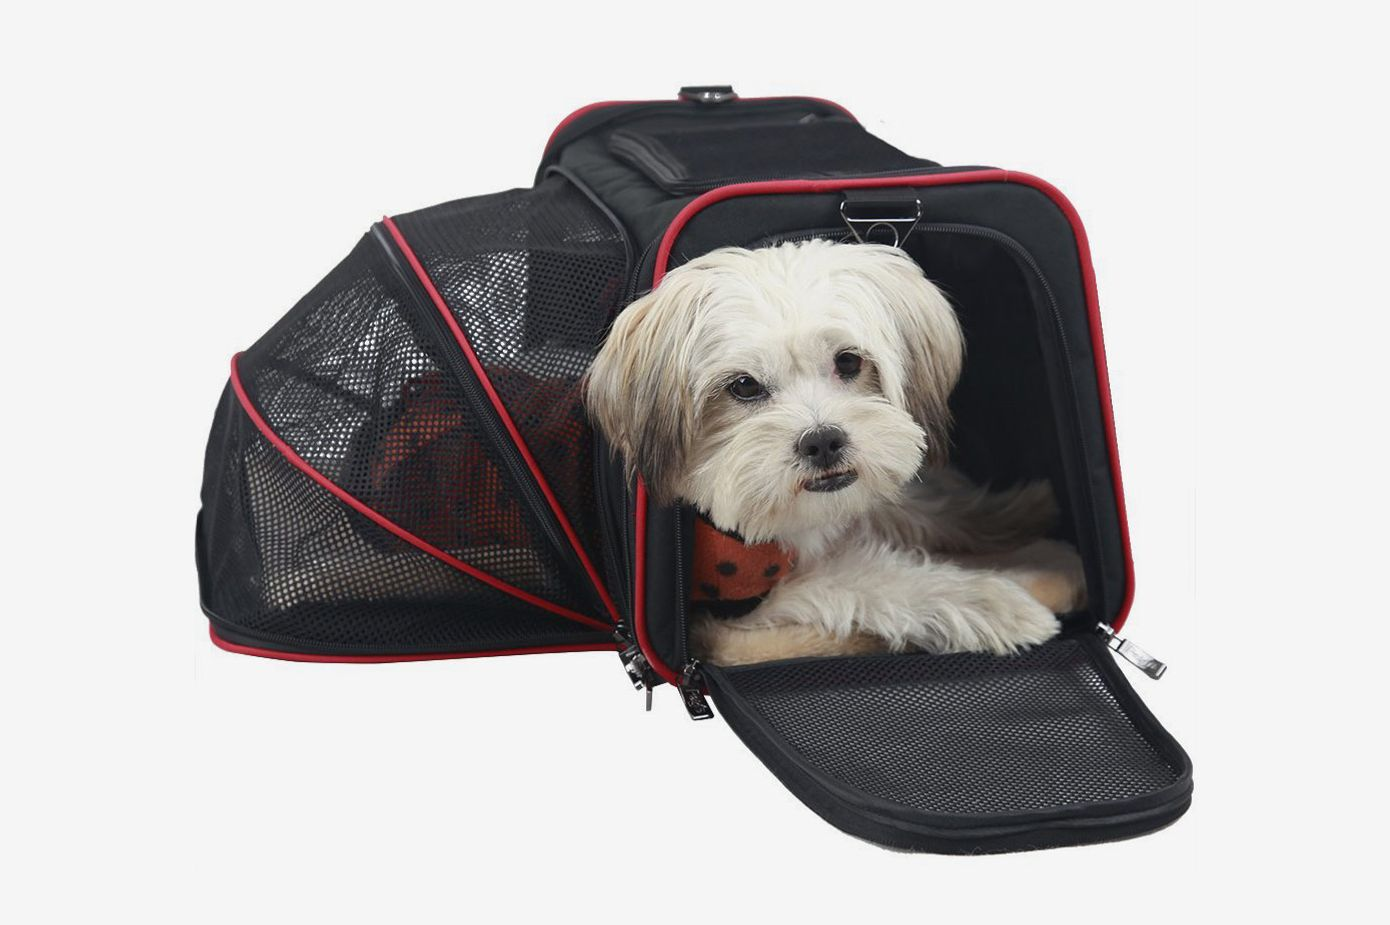 Petsfit Expandable Travel Dog Carrier With Fleece Mat